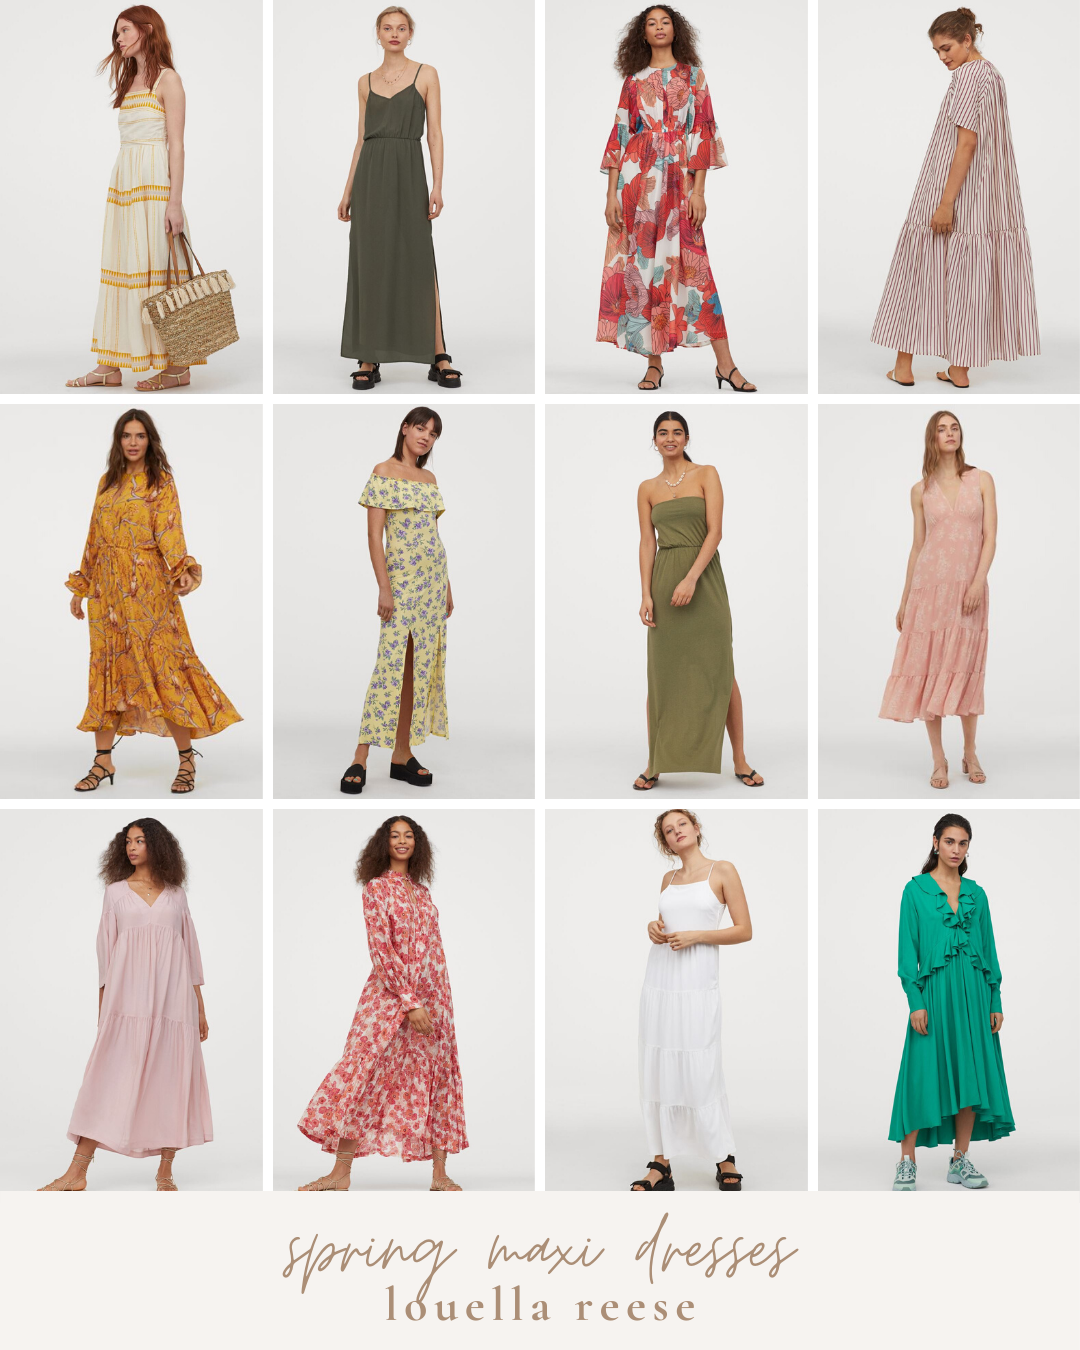 H&M Spring Favorites: Affordable Spring Maxi Dresses | Louella Reese